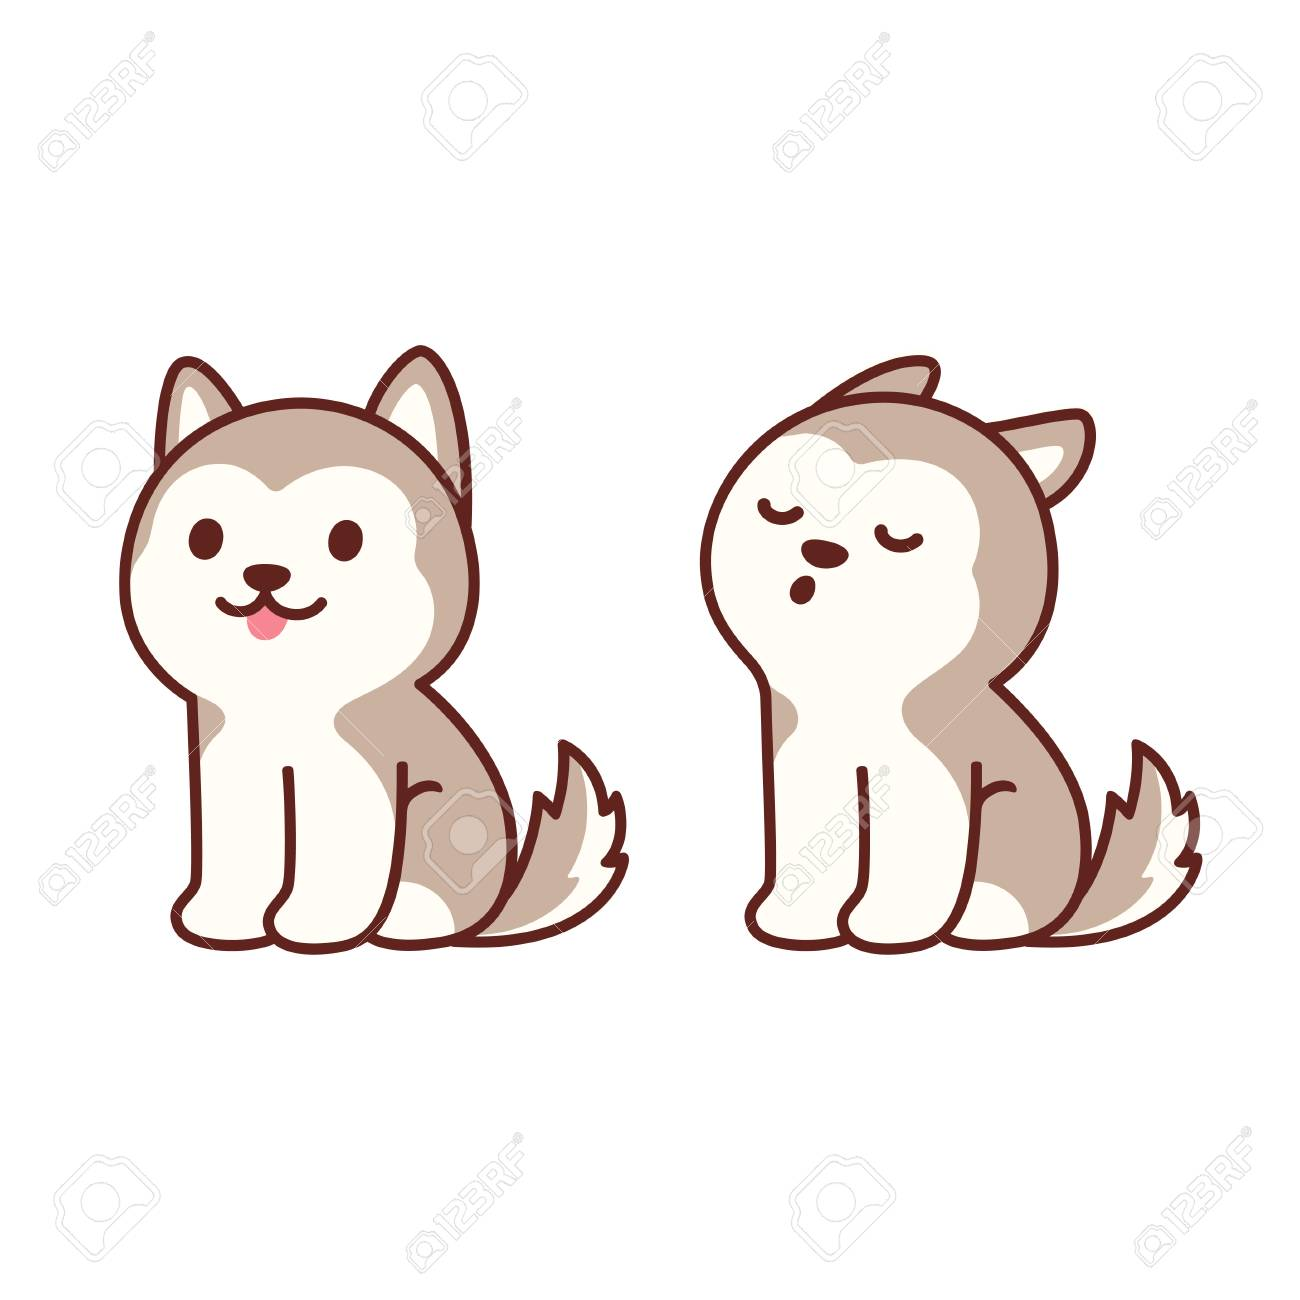 Cute Cartoon Husky Puppy Sitting And Howling Adorable Little Royalty Free Cliparts Vectors And Stock Illustration Image 126771917